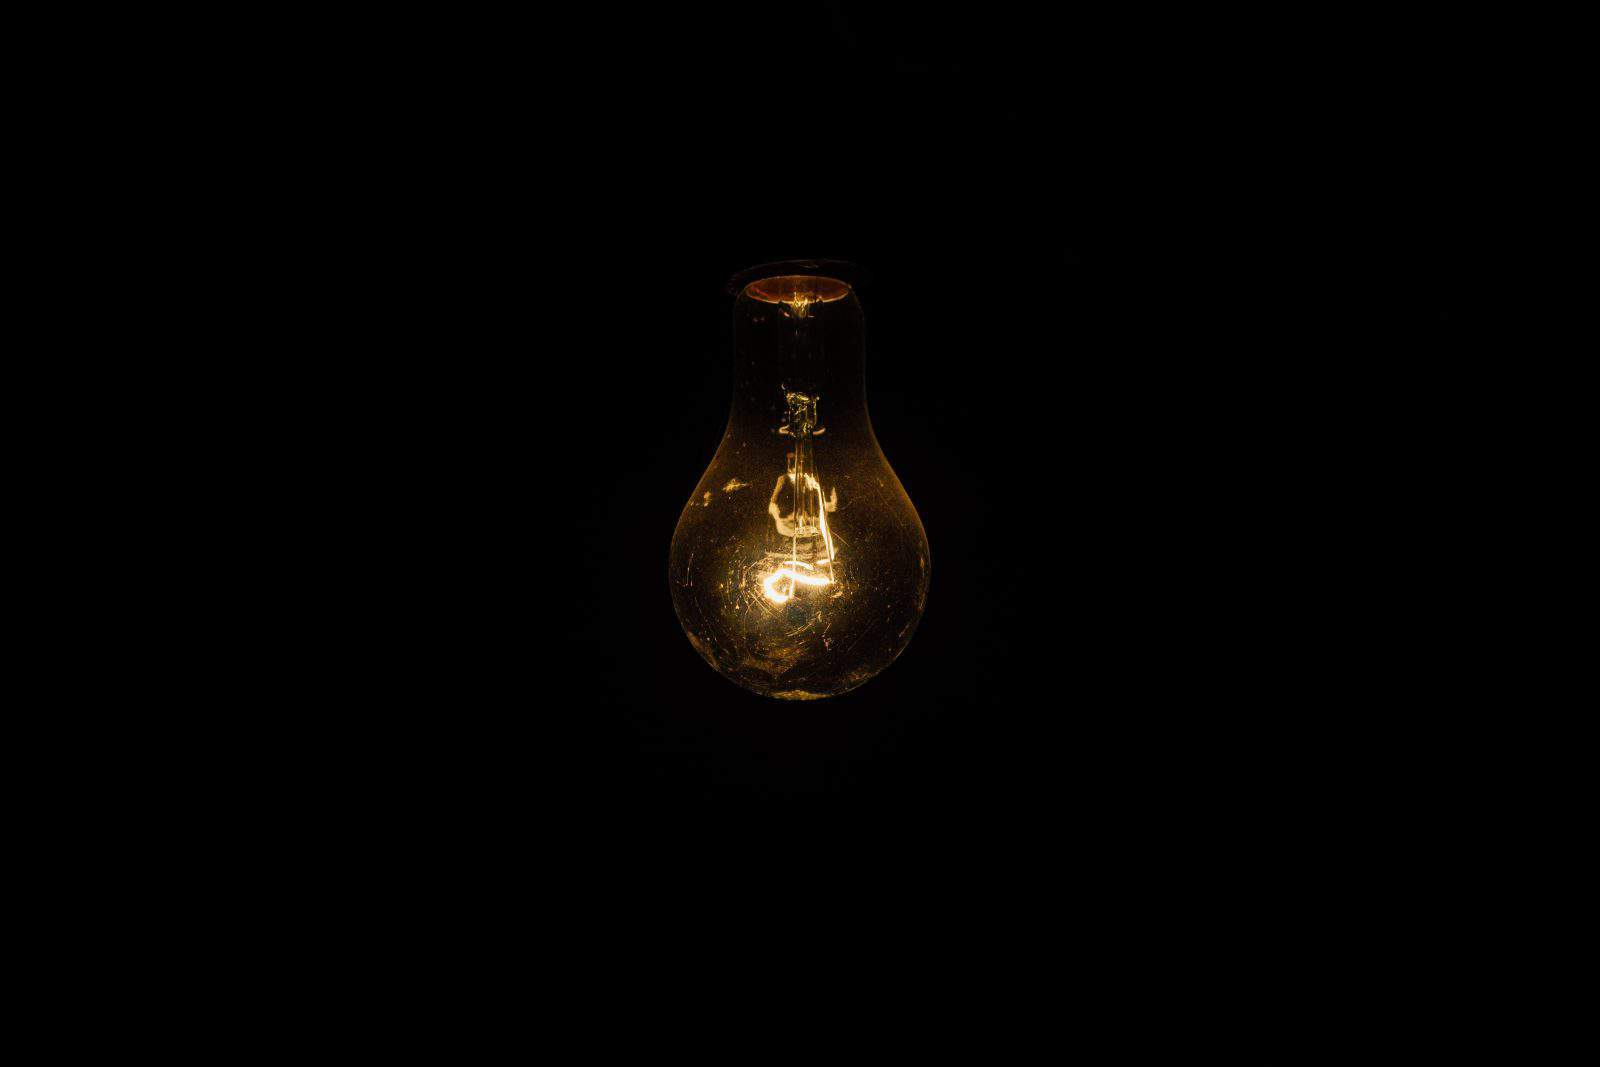 tungsten light bulb